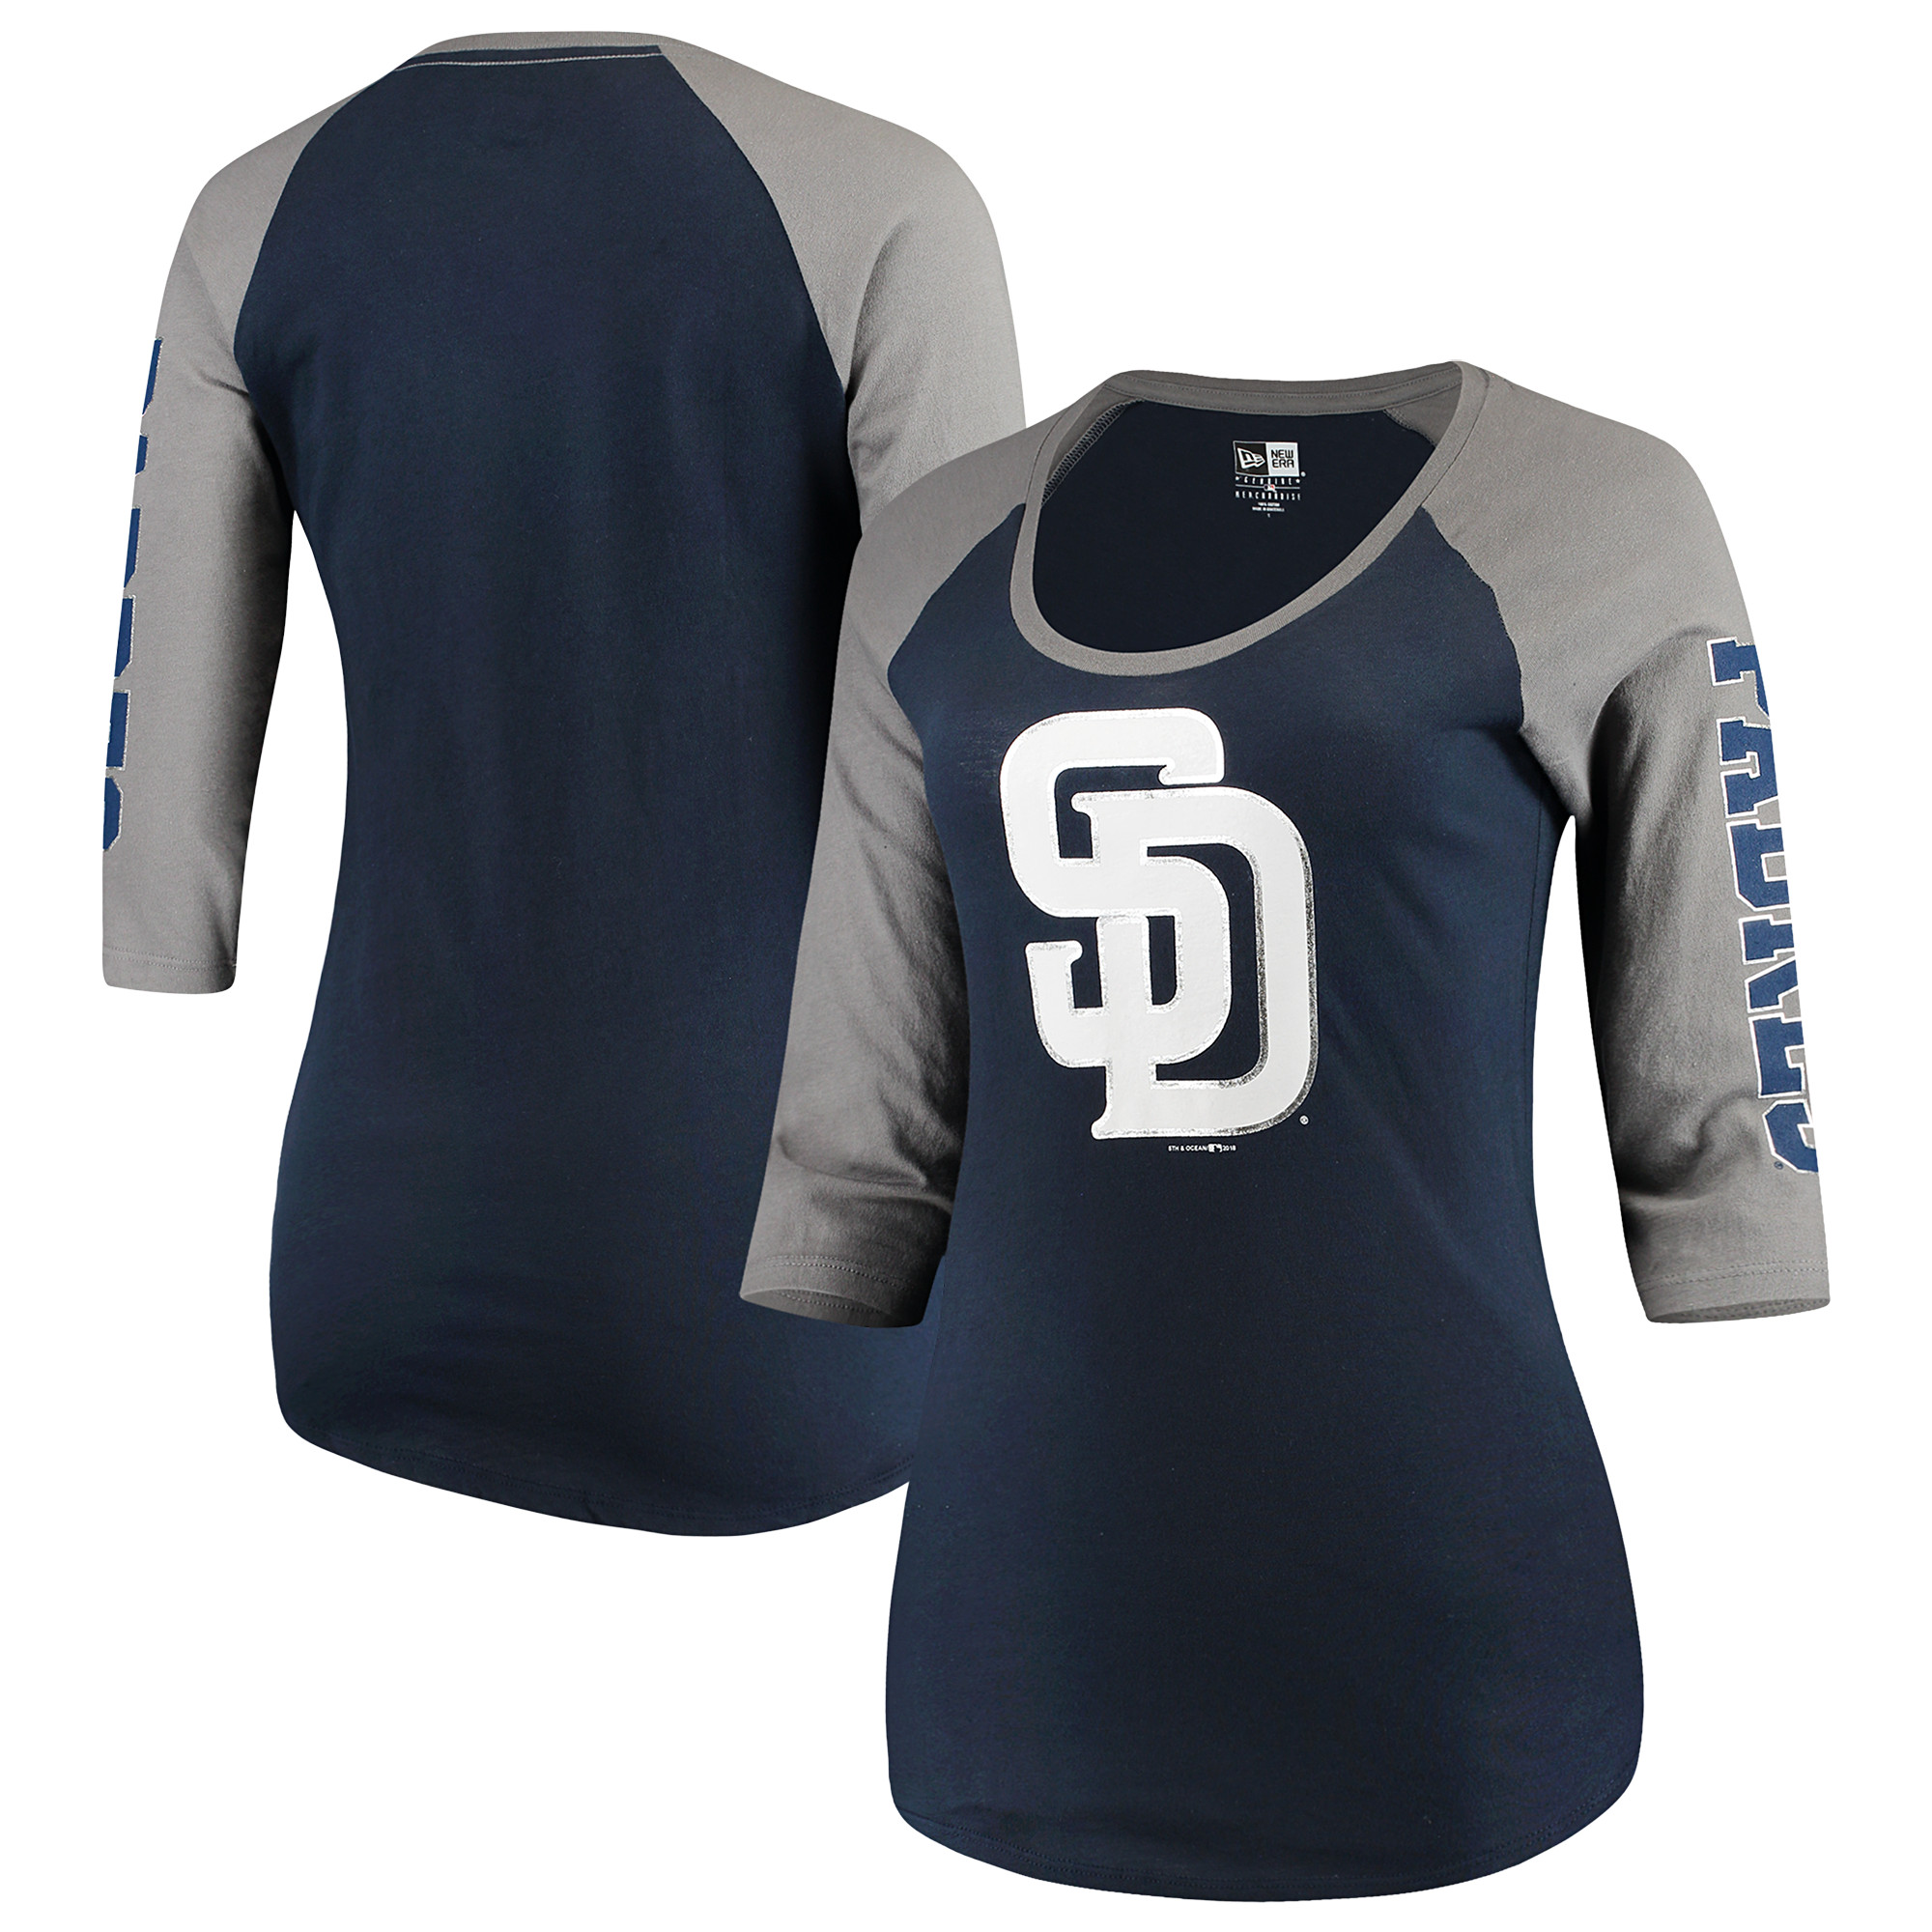 San Diego Padres 5th & Ocean by New Era Women's Foil 3/4-Sleeve T-Shirt - Navy/Gray